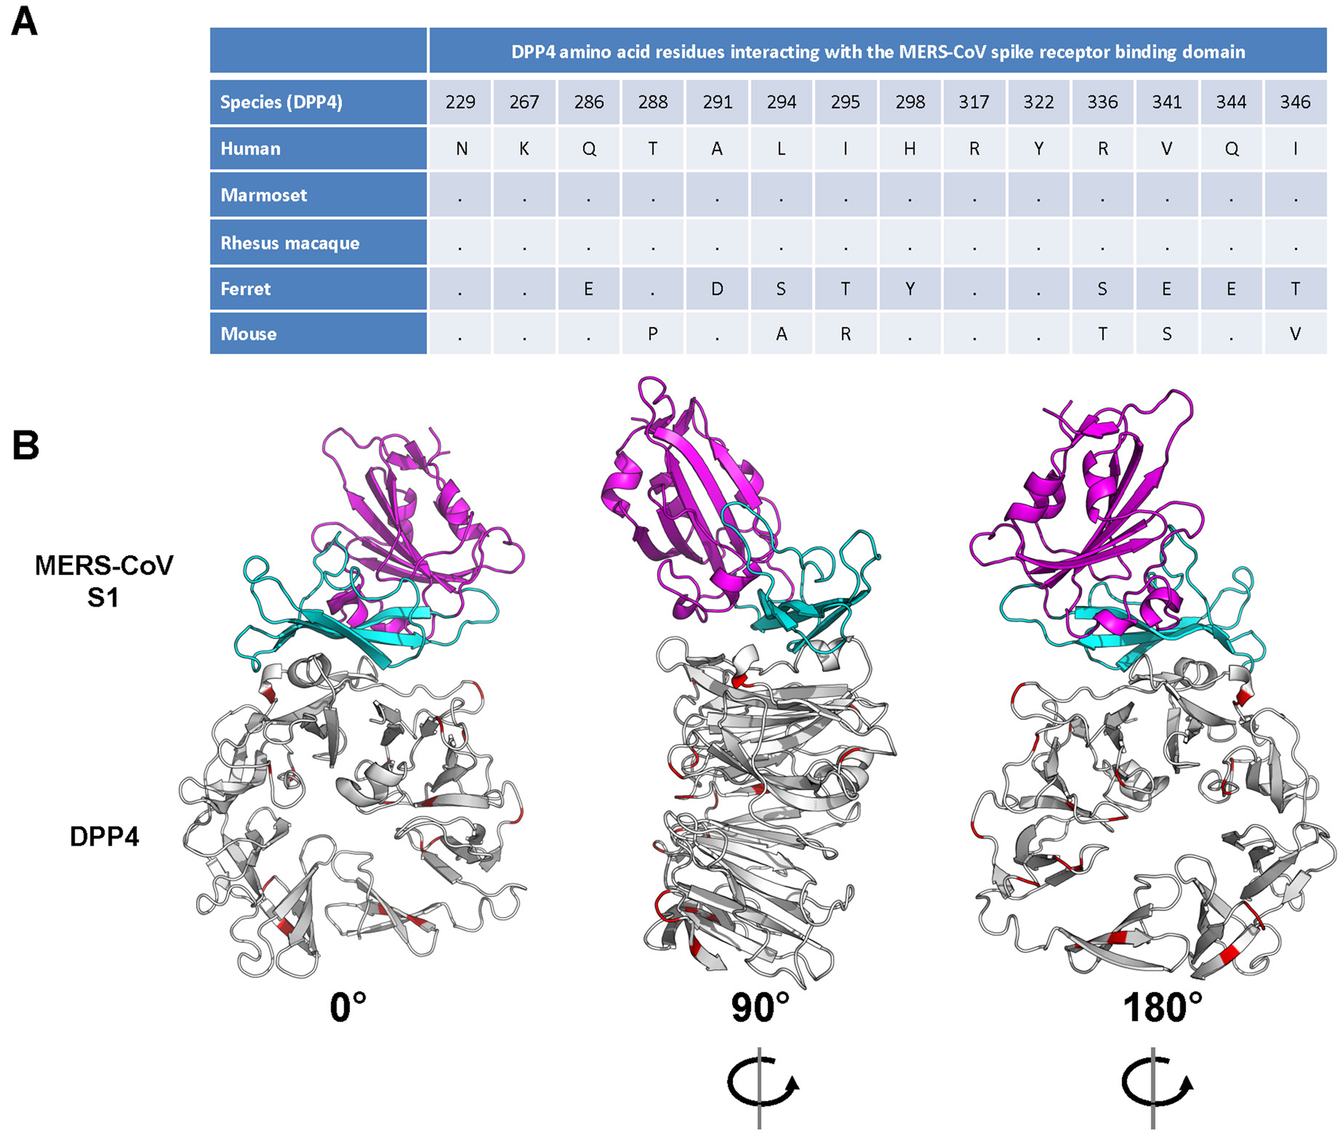 Interaction between the MERS-CoV spike glycoprotein (S1) and its receptor dipeptidyl peptidase 4 (DPP4).